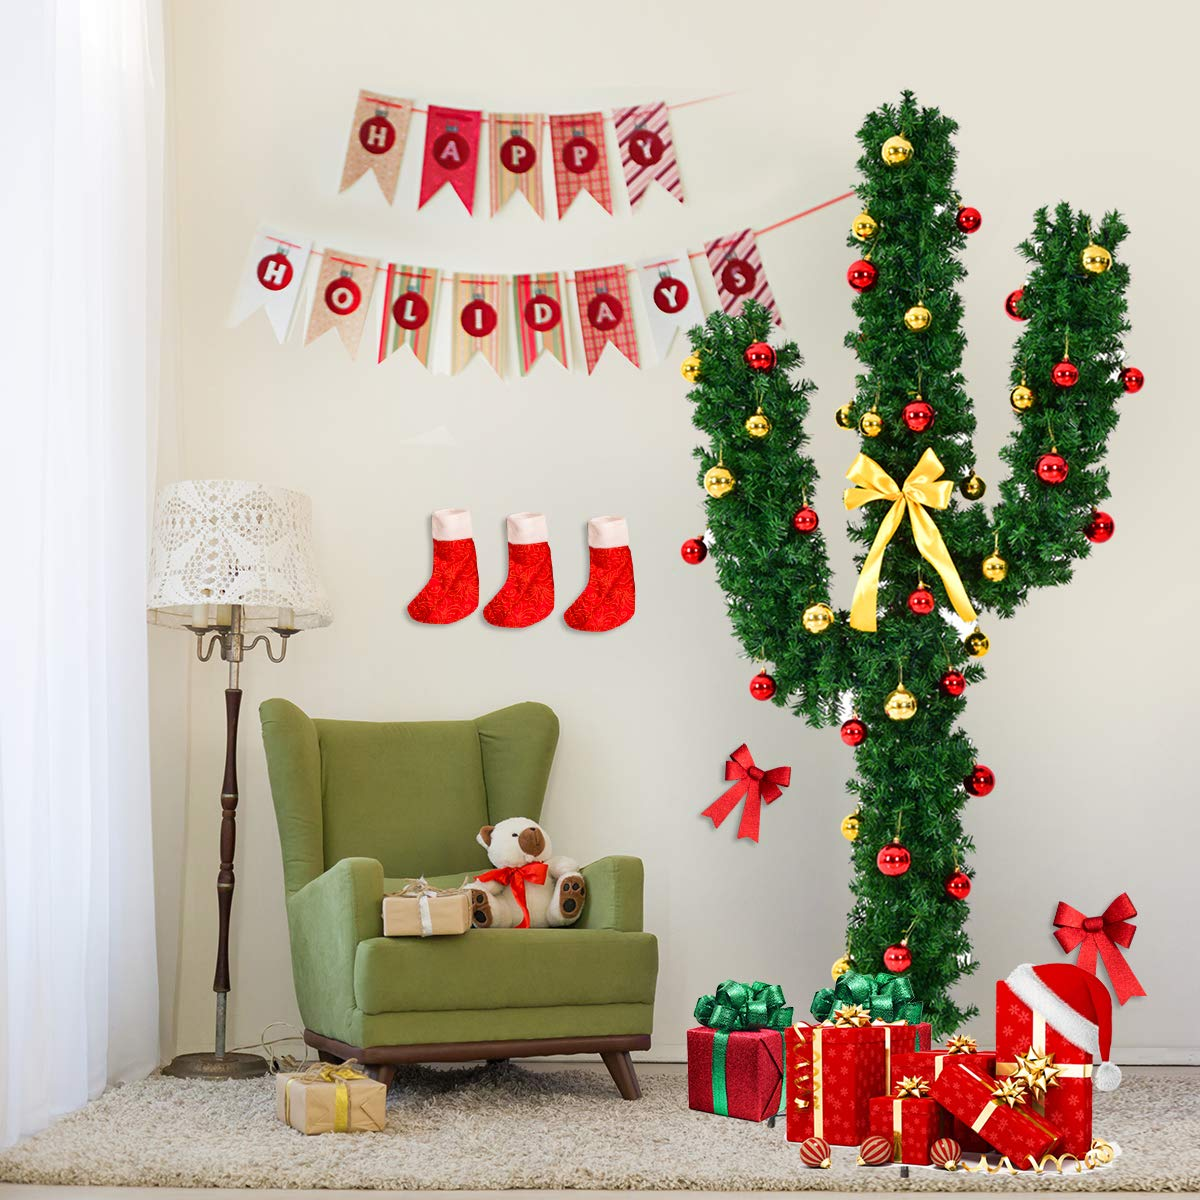 Christmas Ideas.Christmas Ideas Food Decor Parties Crafts Southern